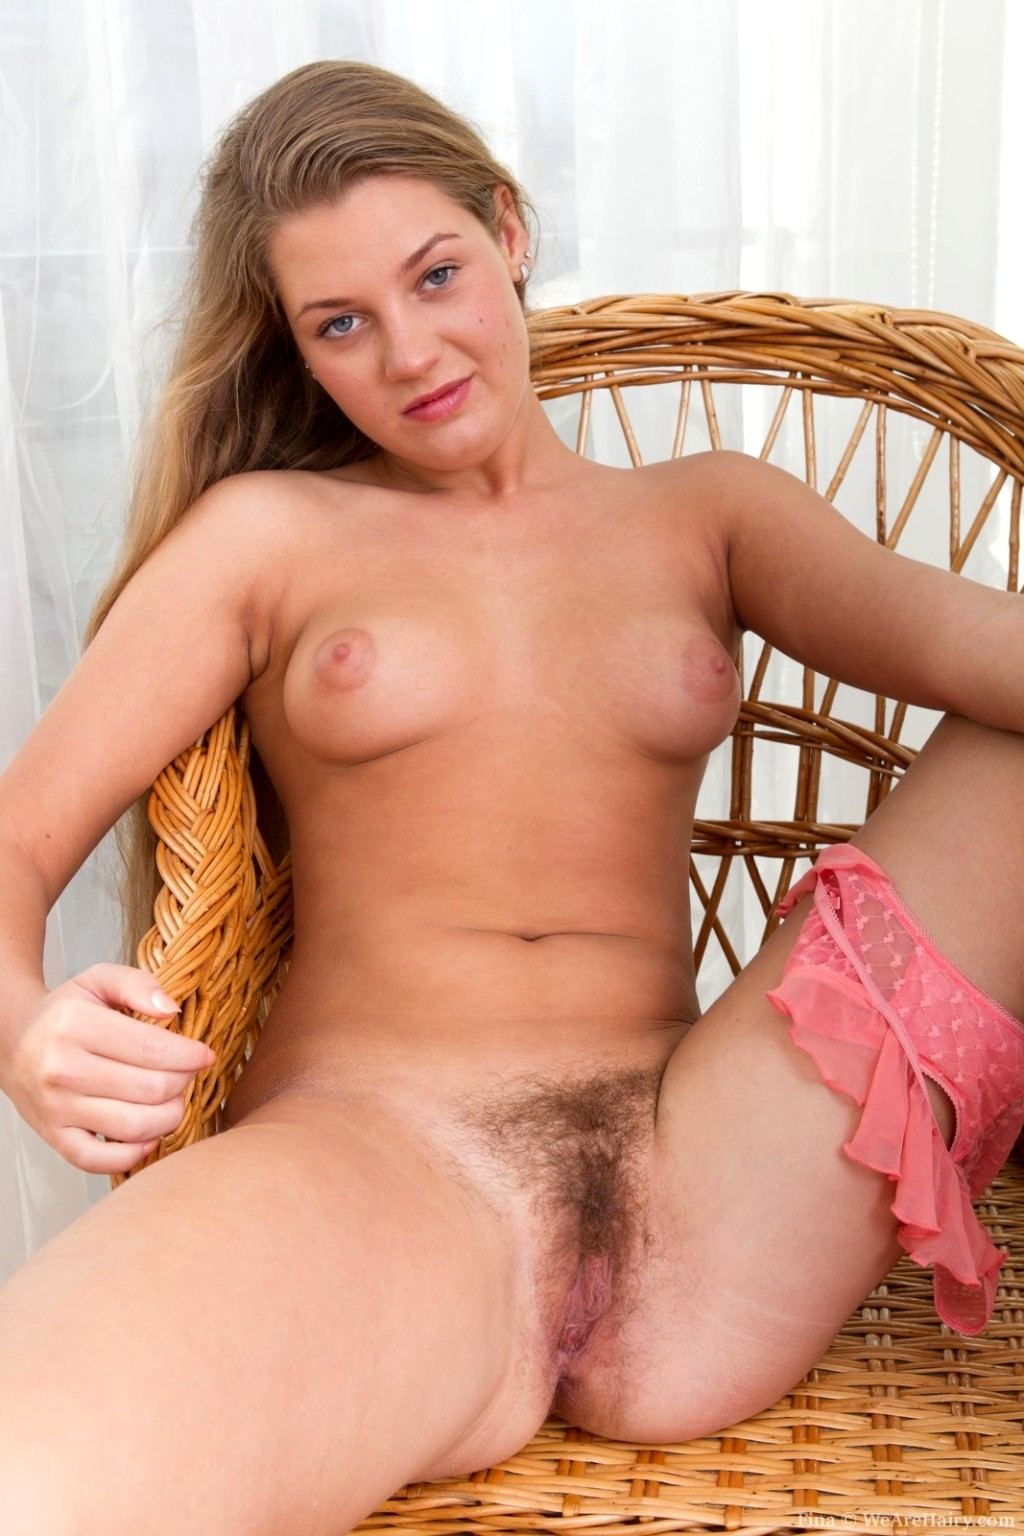 hairy-pussy-models-torrent-files